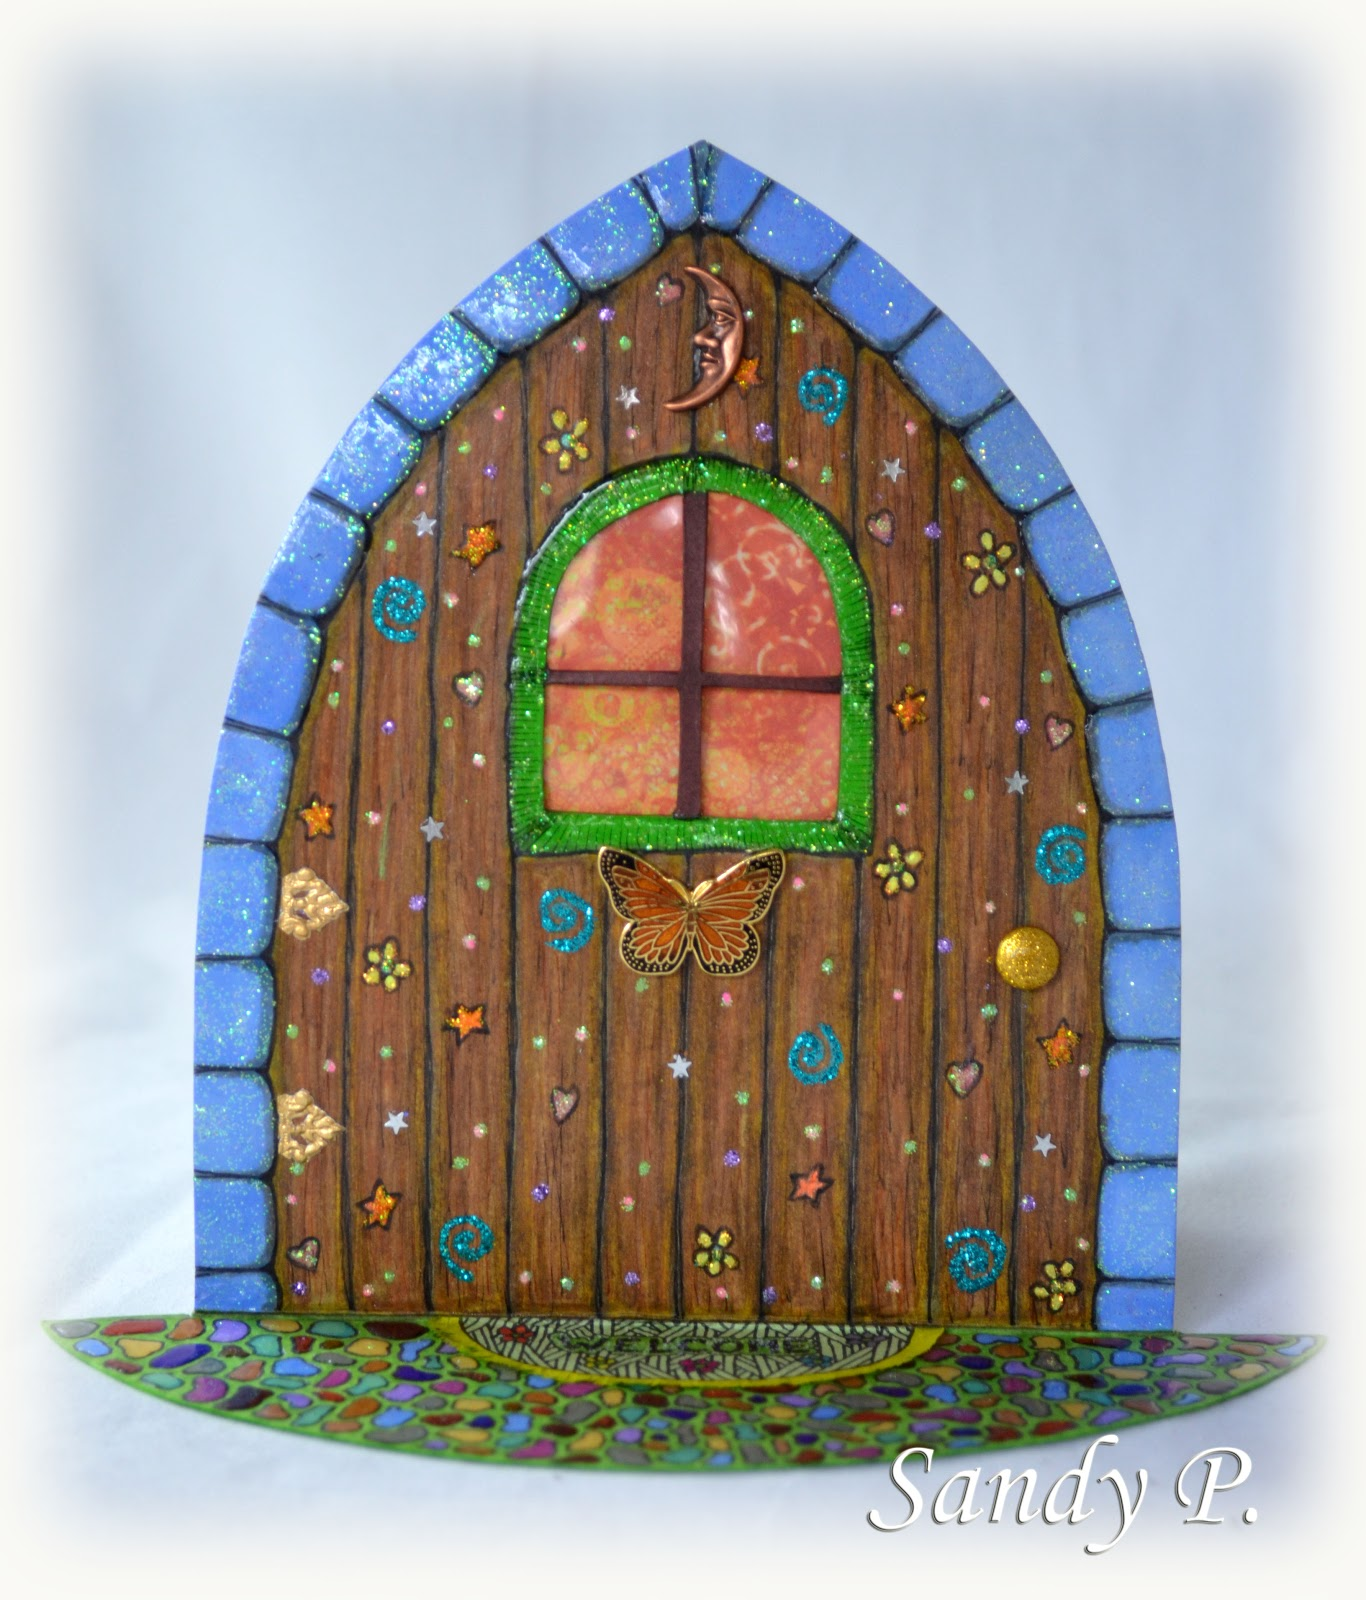 Glitter tart designs fairy doors sandy p art share for Original fairy door